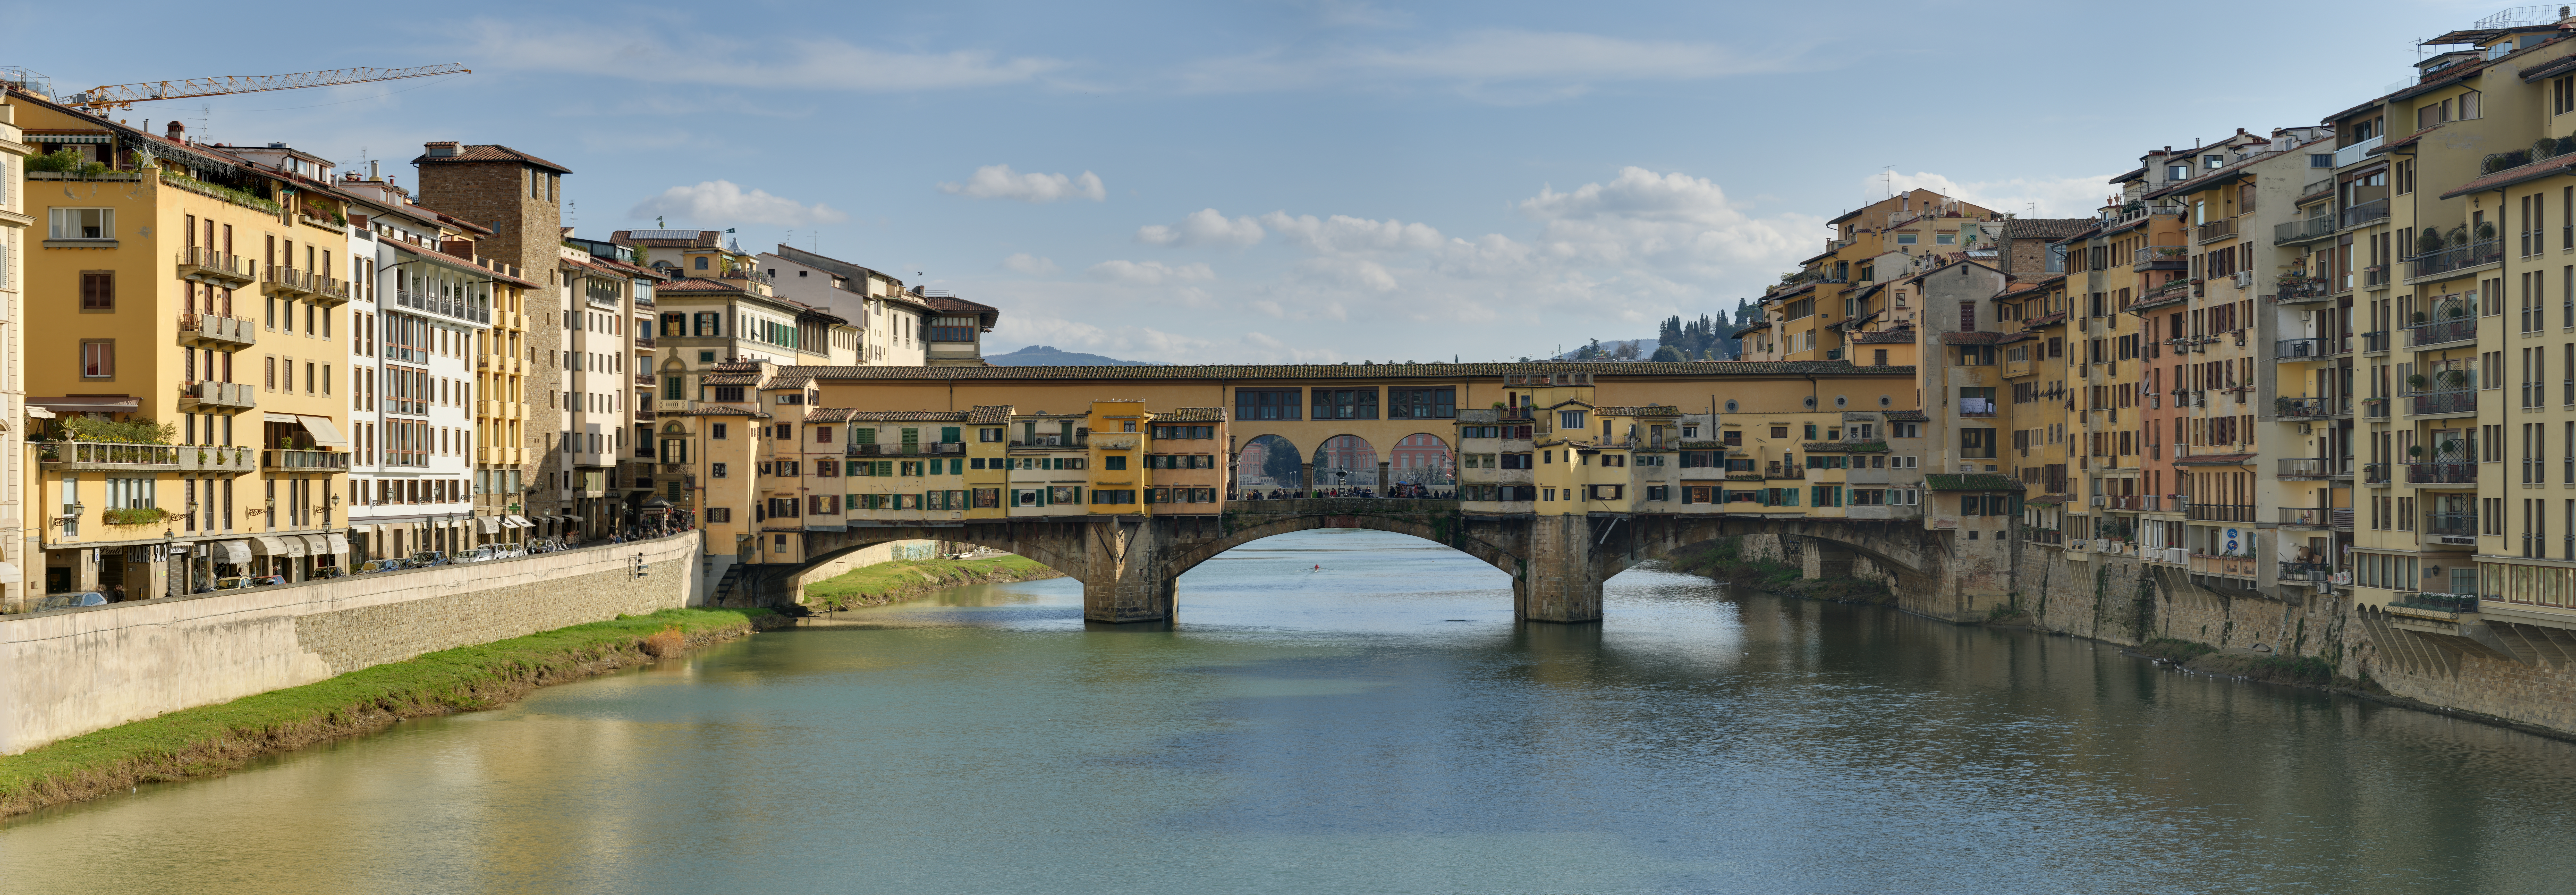 Panorama of the Ponte Vecchio in Florence, Italy